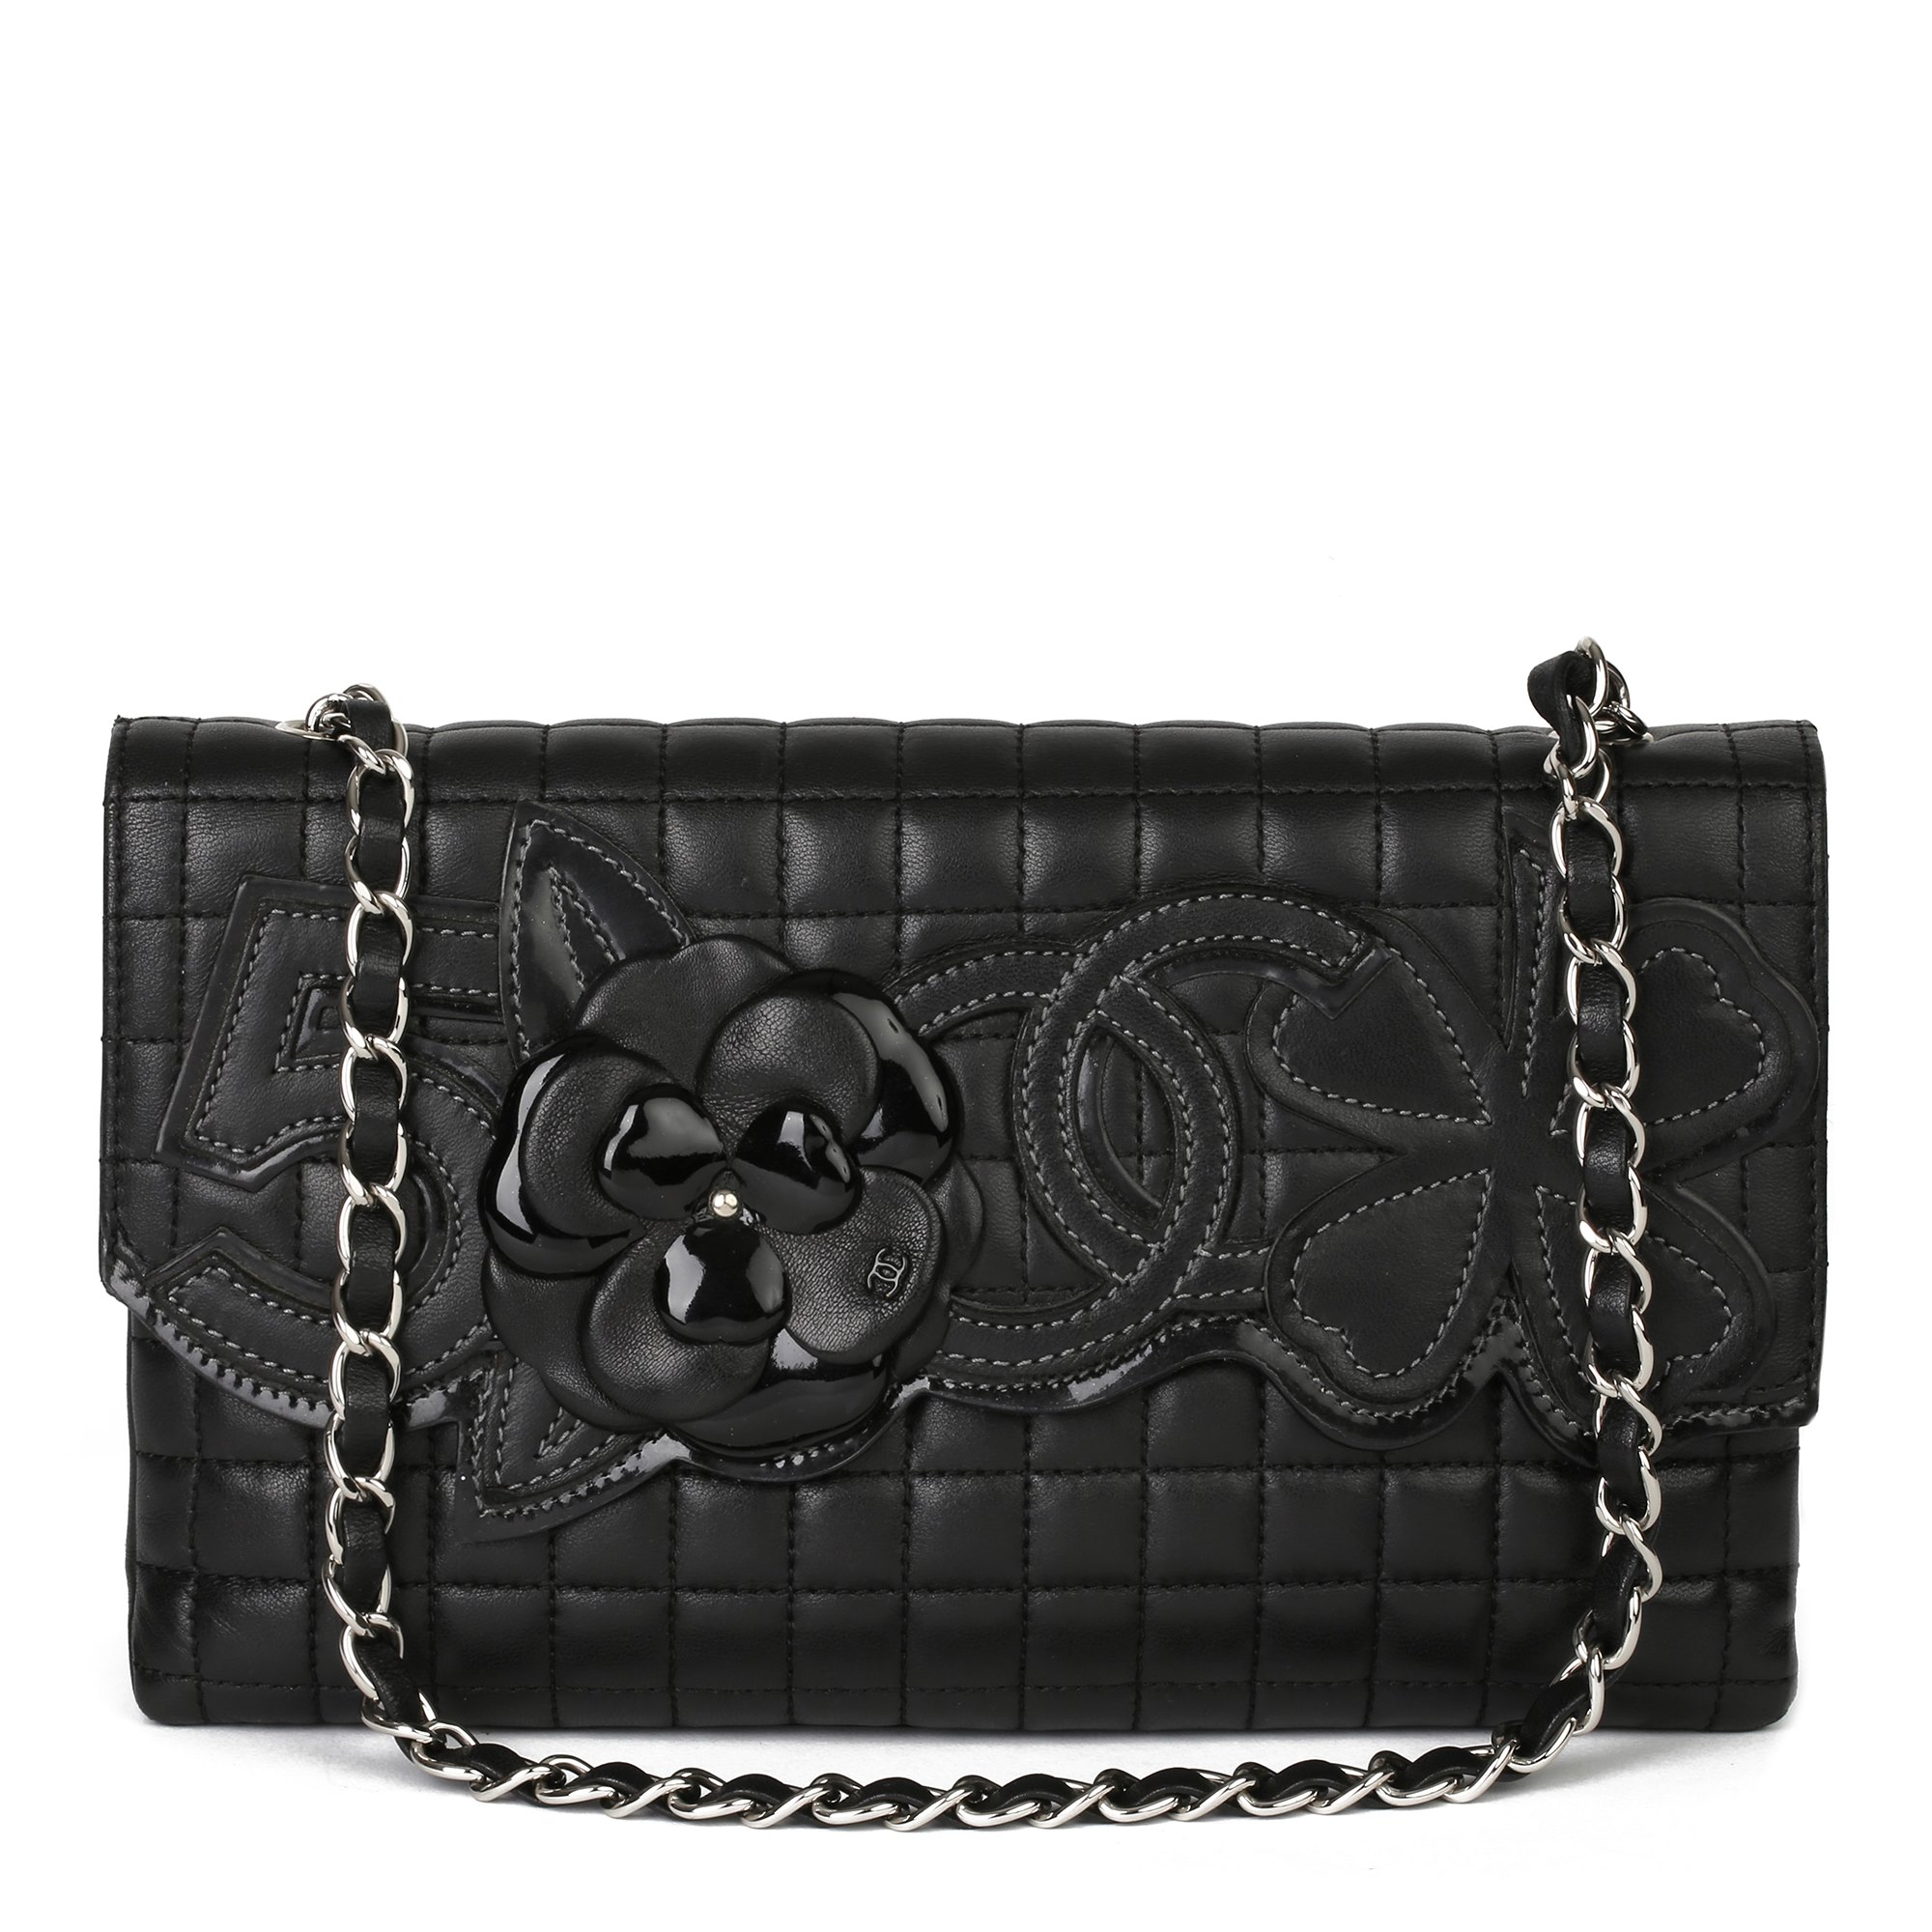 Chanel Black Chocolate Bar Quilted Lambskin & Patent Leather No. 5 Camellia Flap Bag